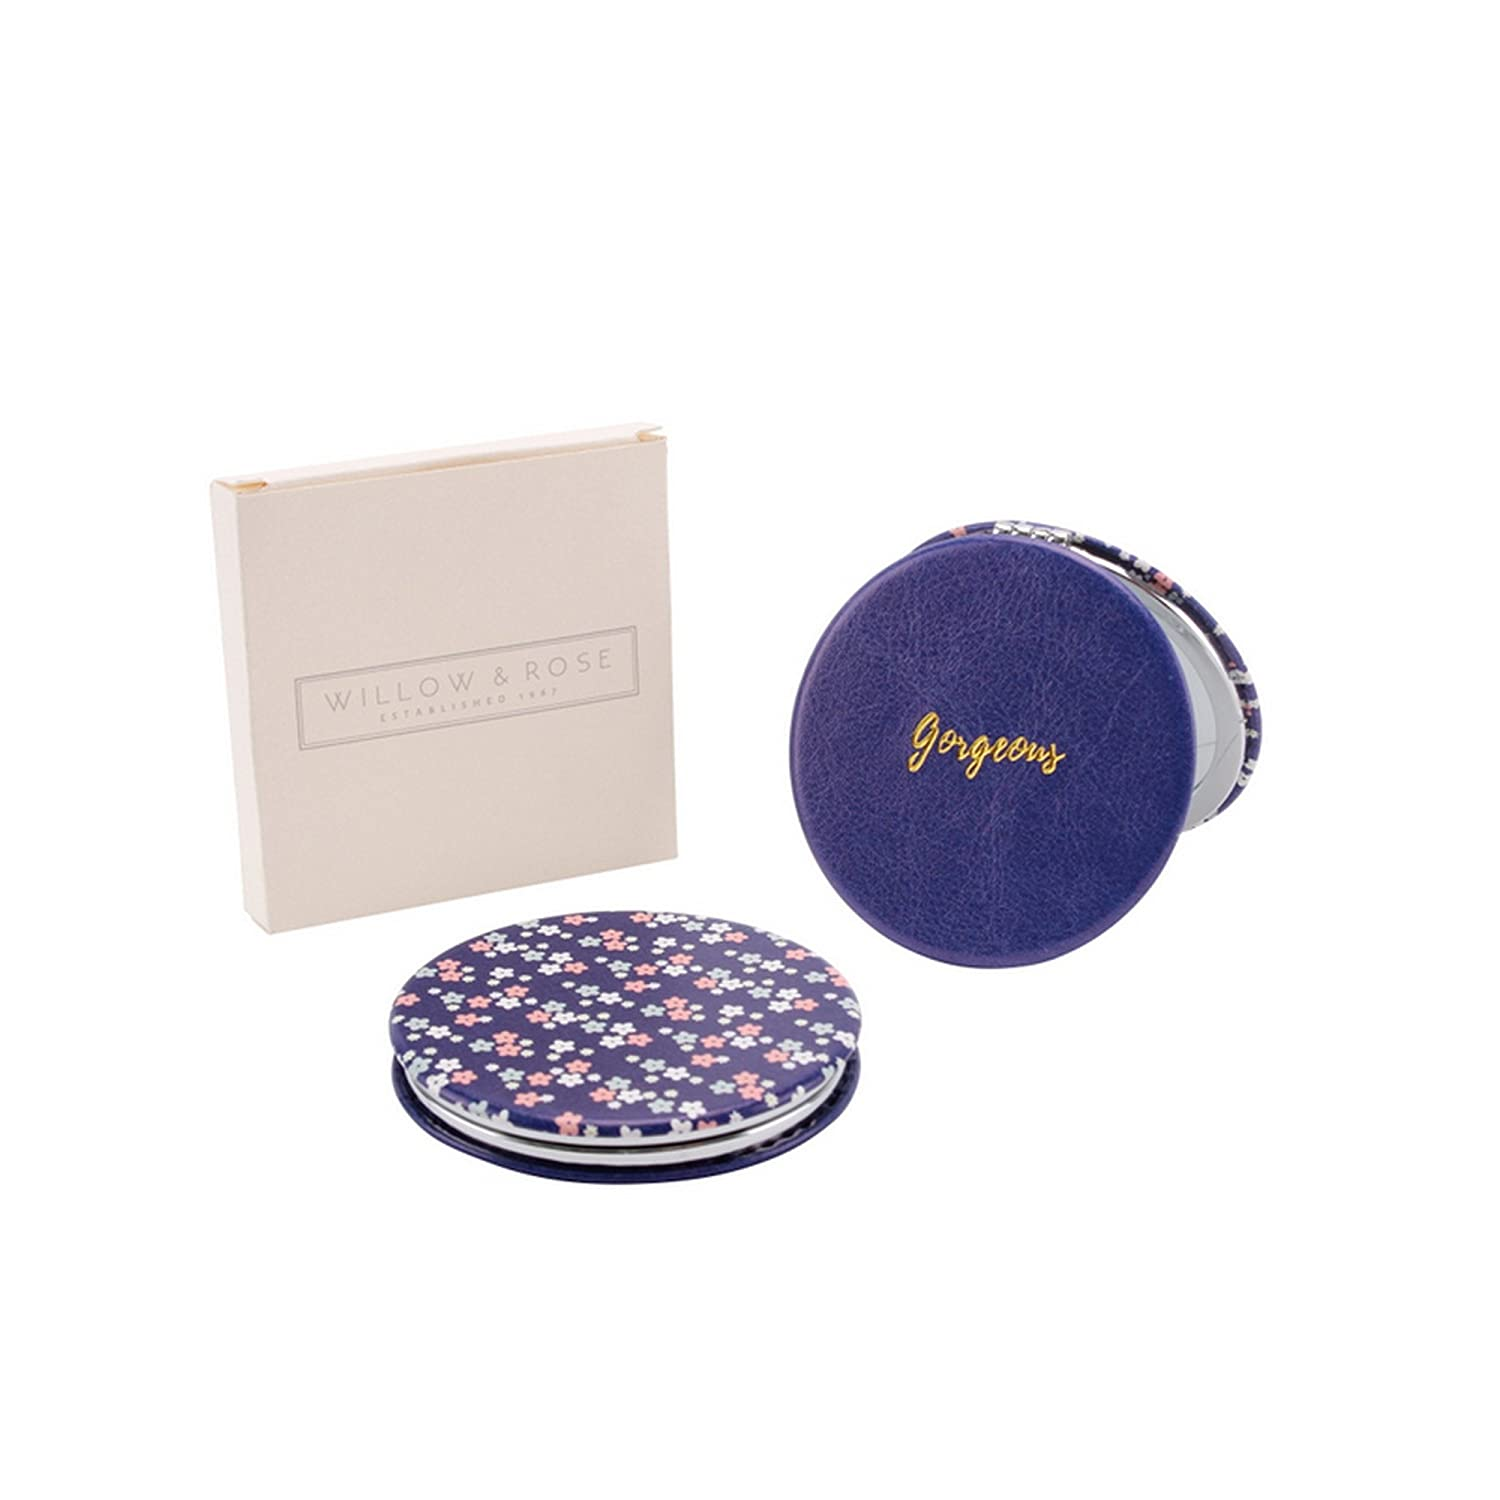 CGB Giftware Willow And Rose Gorgeous Compact Mirror (One Size) (Blue) UTCB659_1